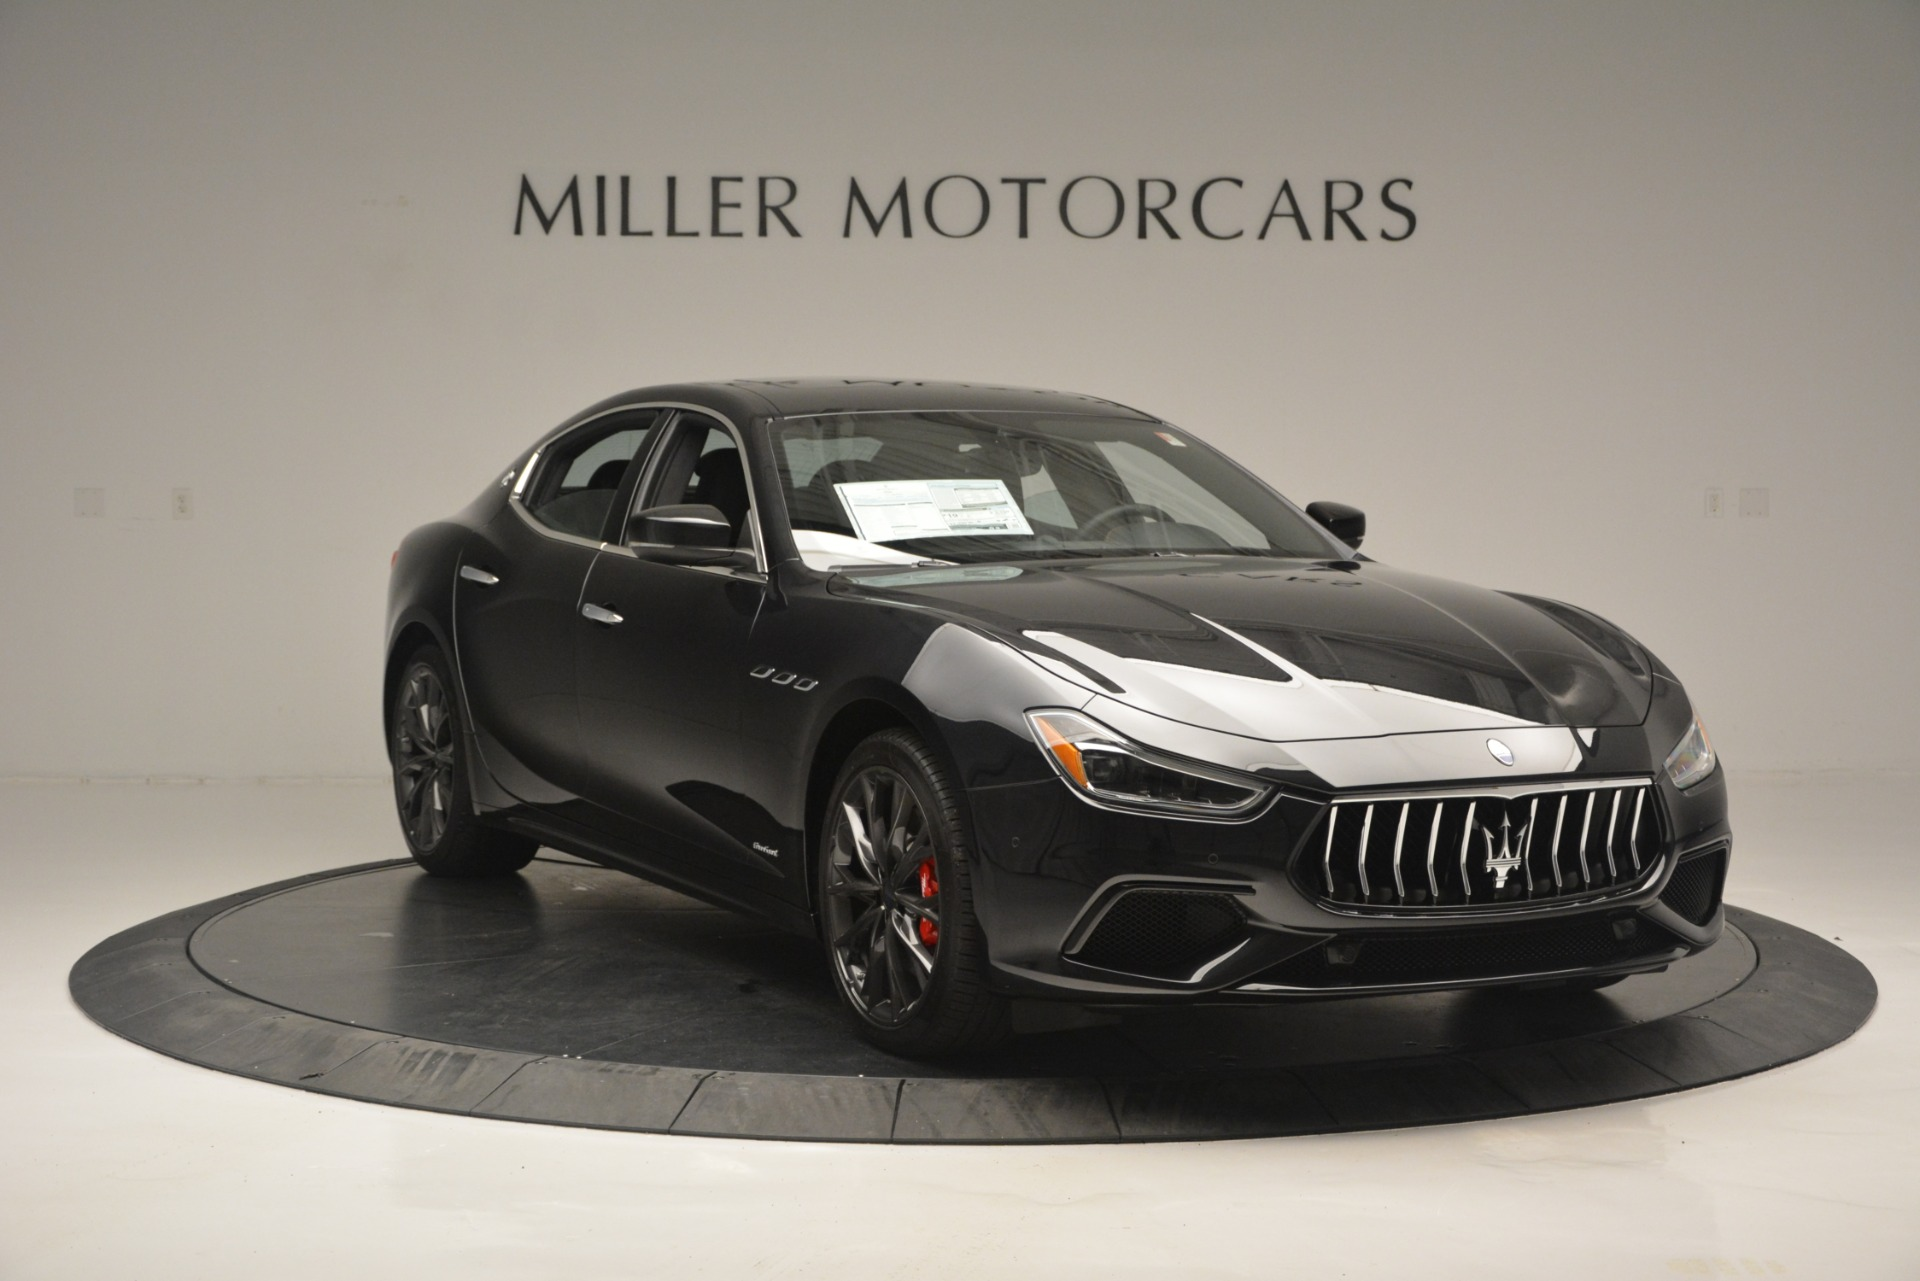 New 2019 Maserati Ghibli S Q4 GranSport For Sale In Westport, CT 2635_p11